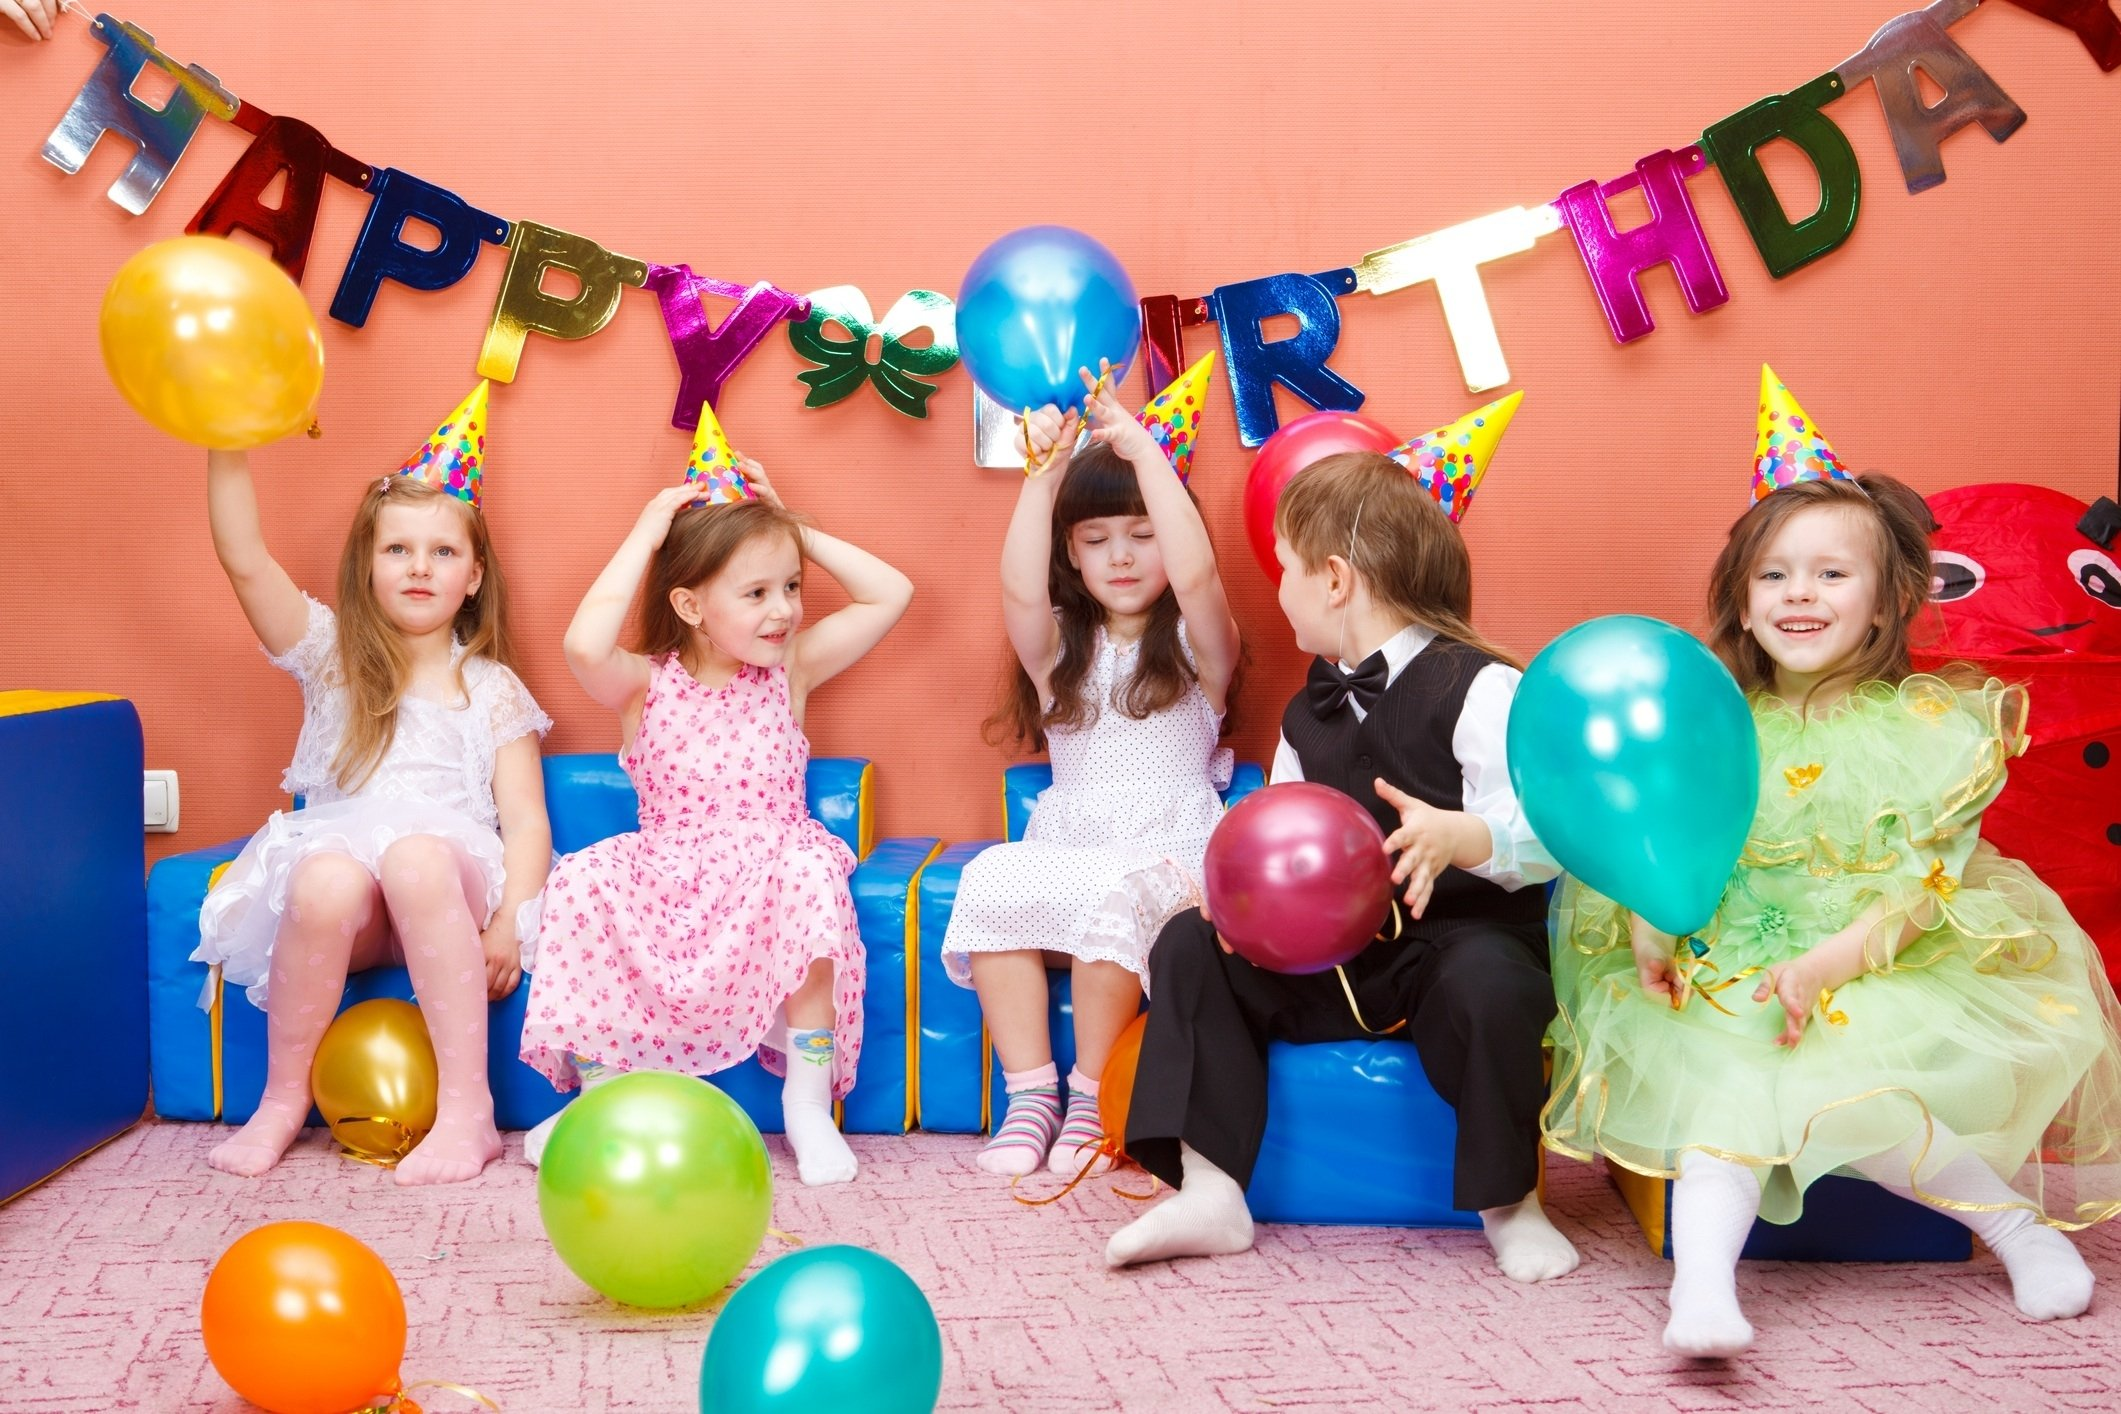 10 Fabulous Party Ideas For 11 Year Olds 45 awesome 11 12 year old birthday party ideas birthday inspire 15 2021